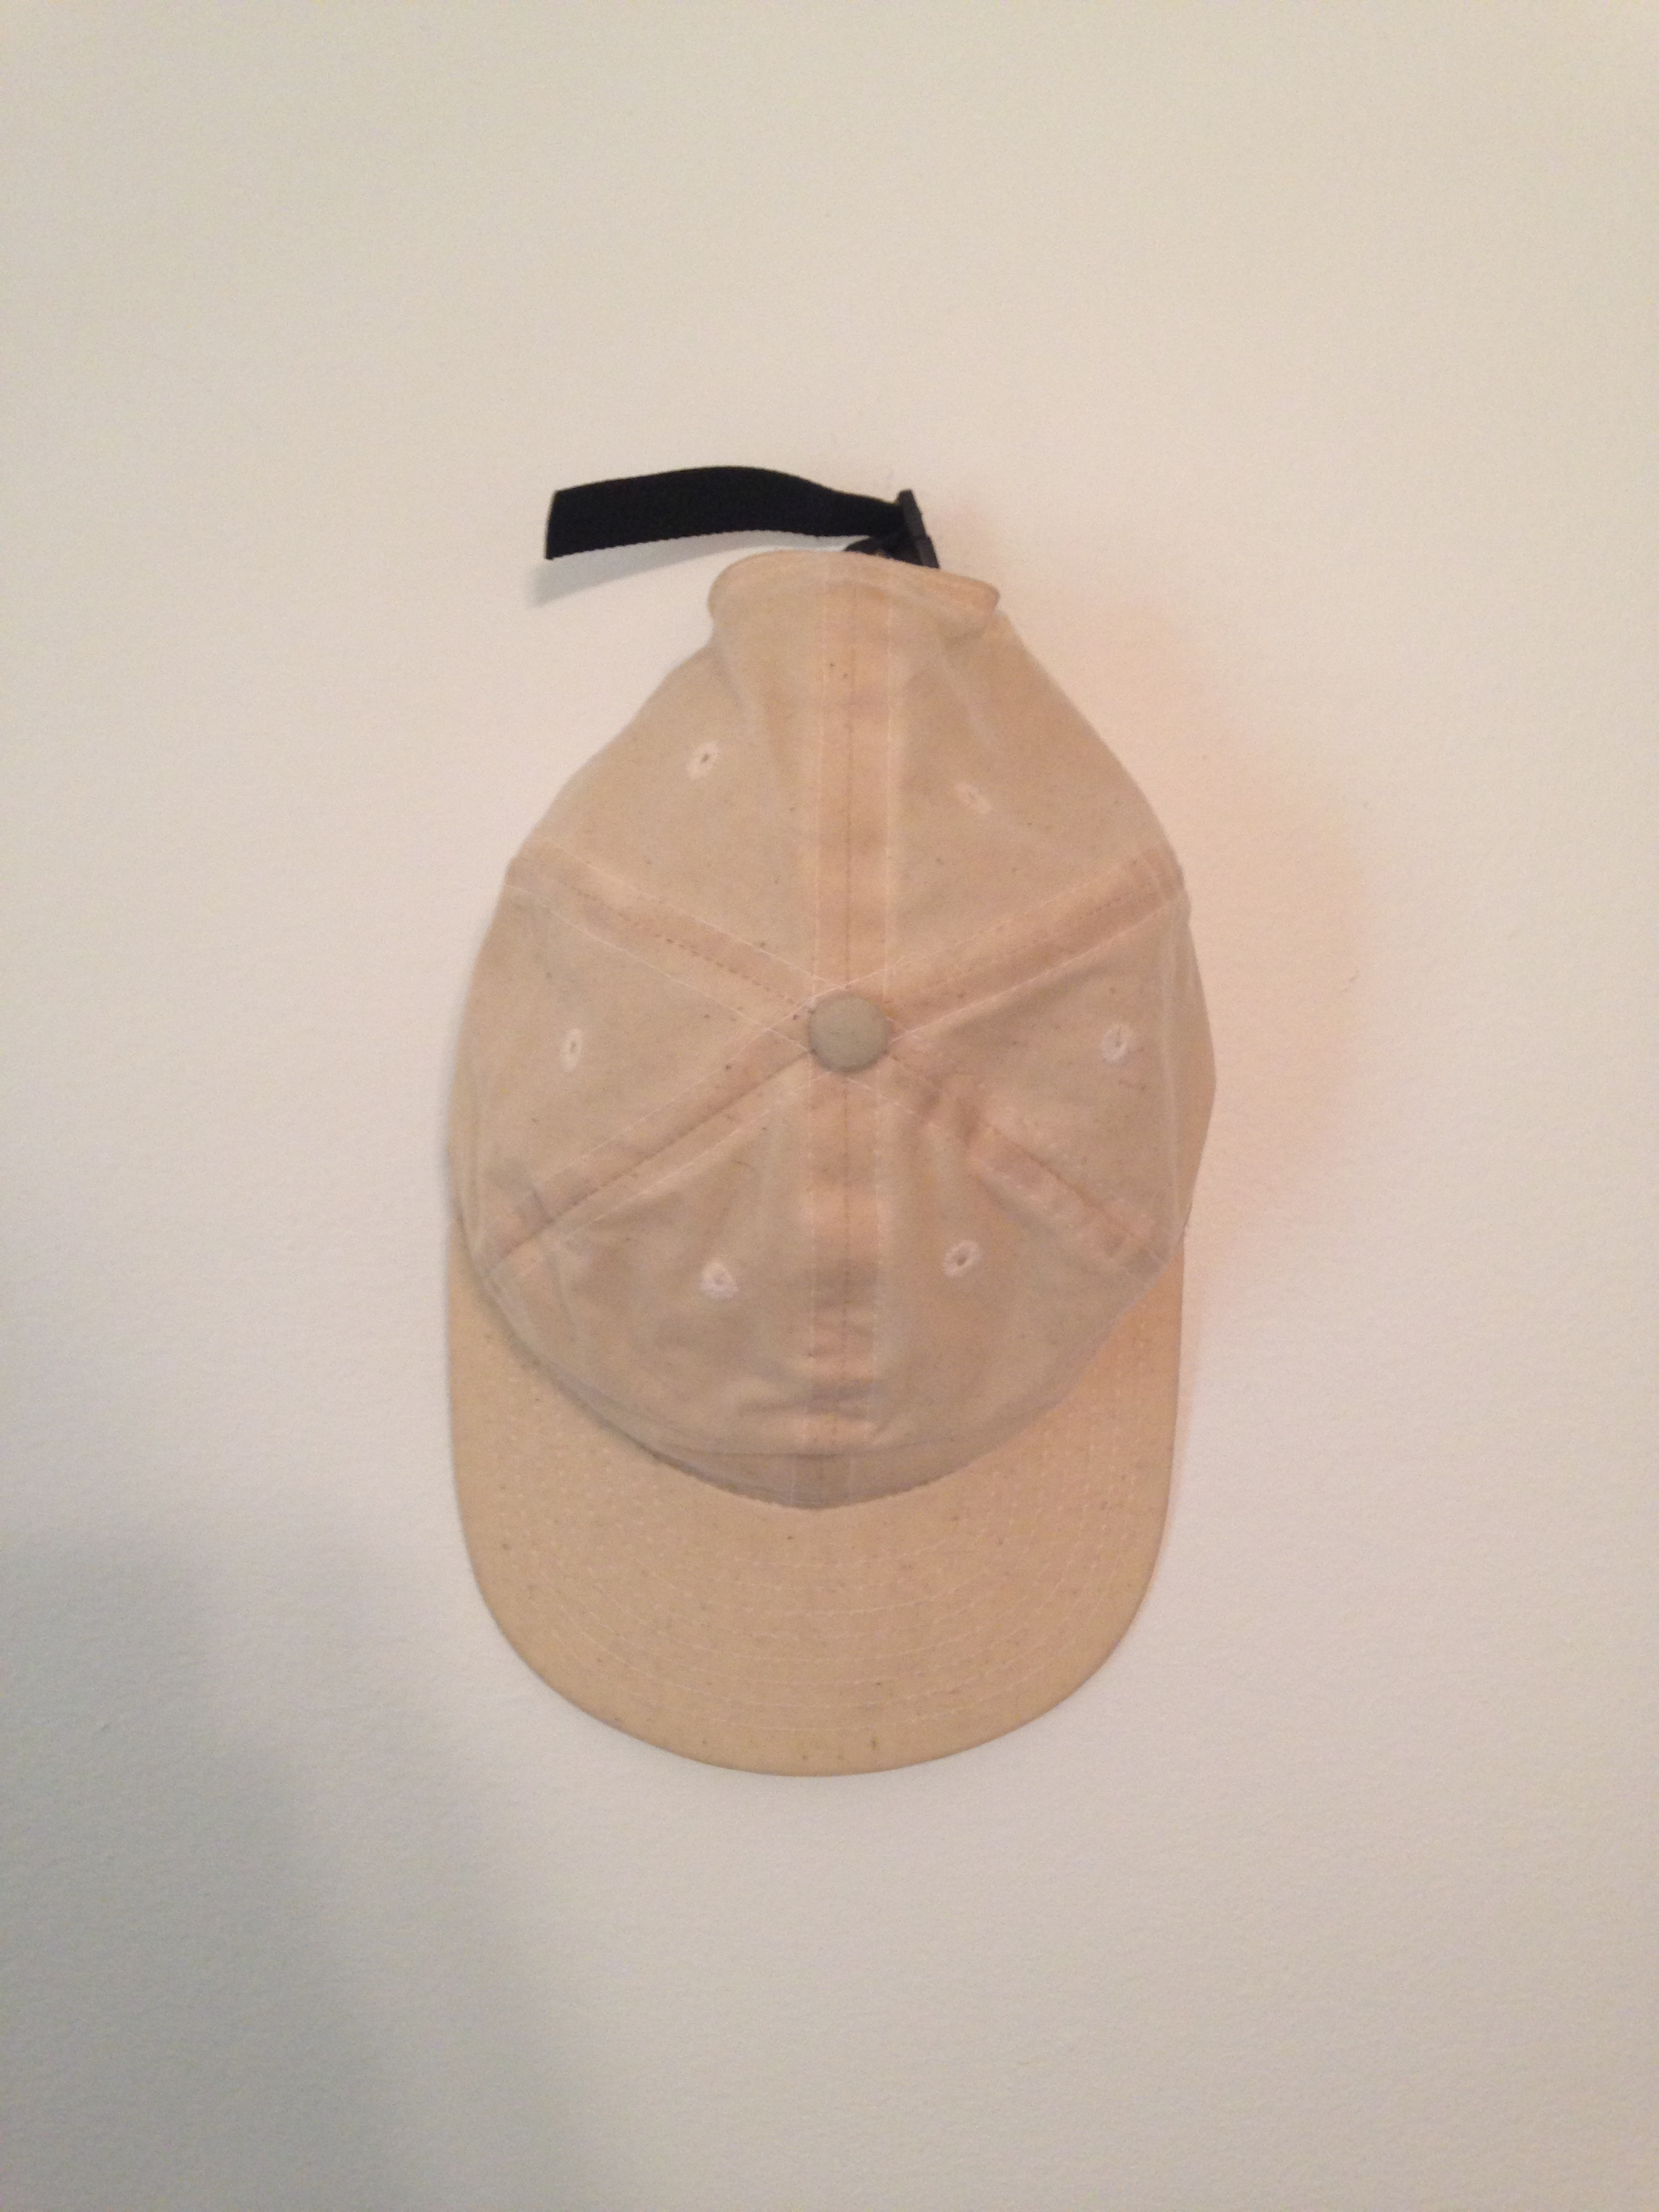 3f0a055cbef98 Fairends Waxed Canvas Ball Cap Size one size - Hats for Sale - Grailed